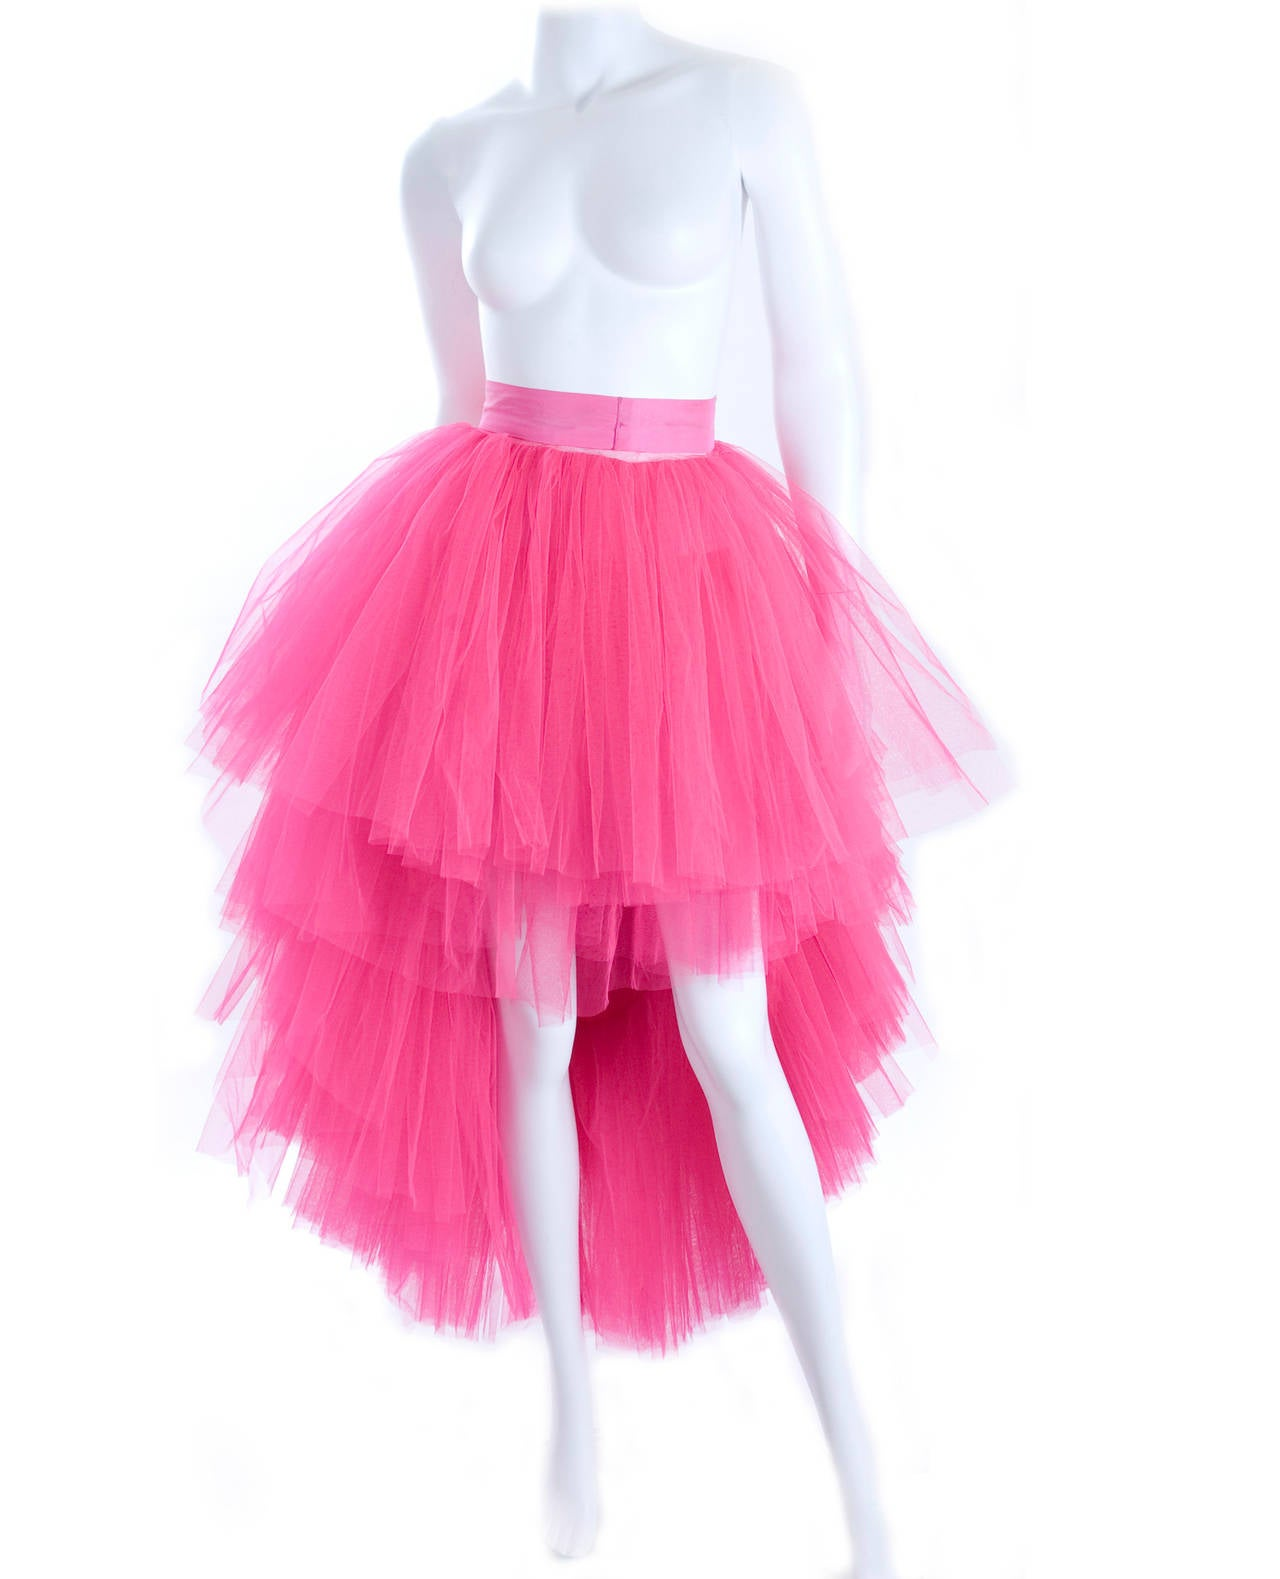 All About Eve Couture by Talbot Runhof Tulle Skirt 5